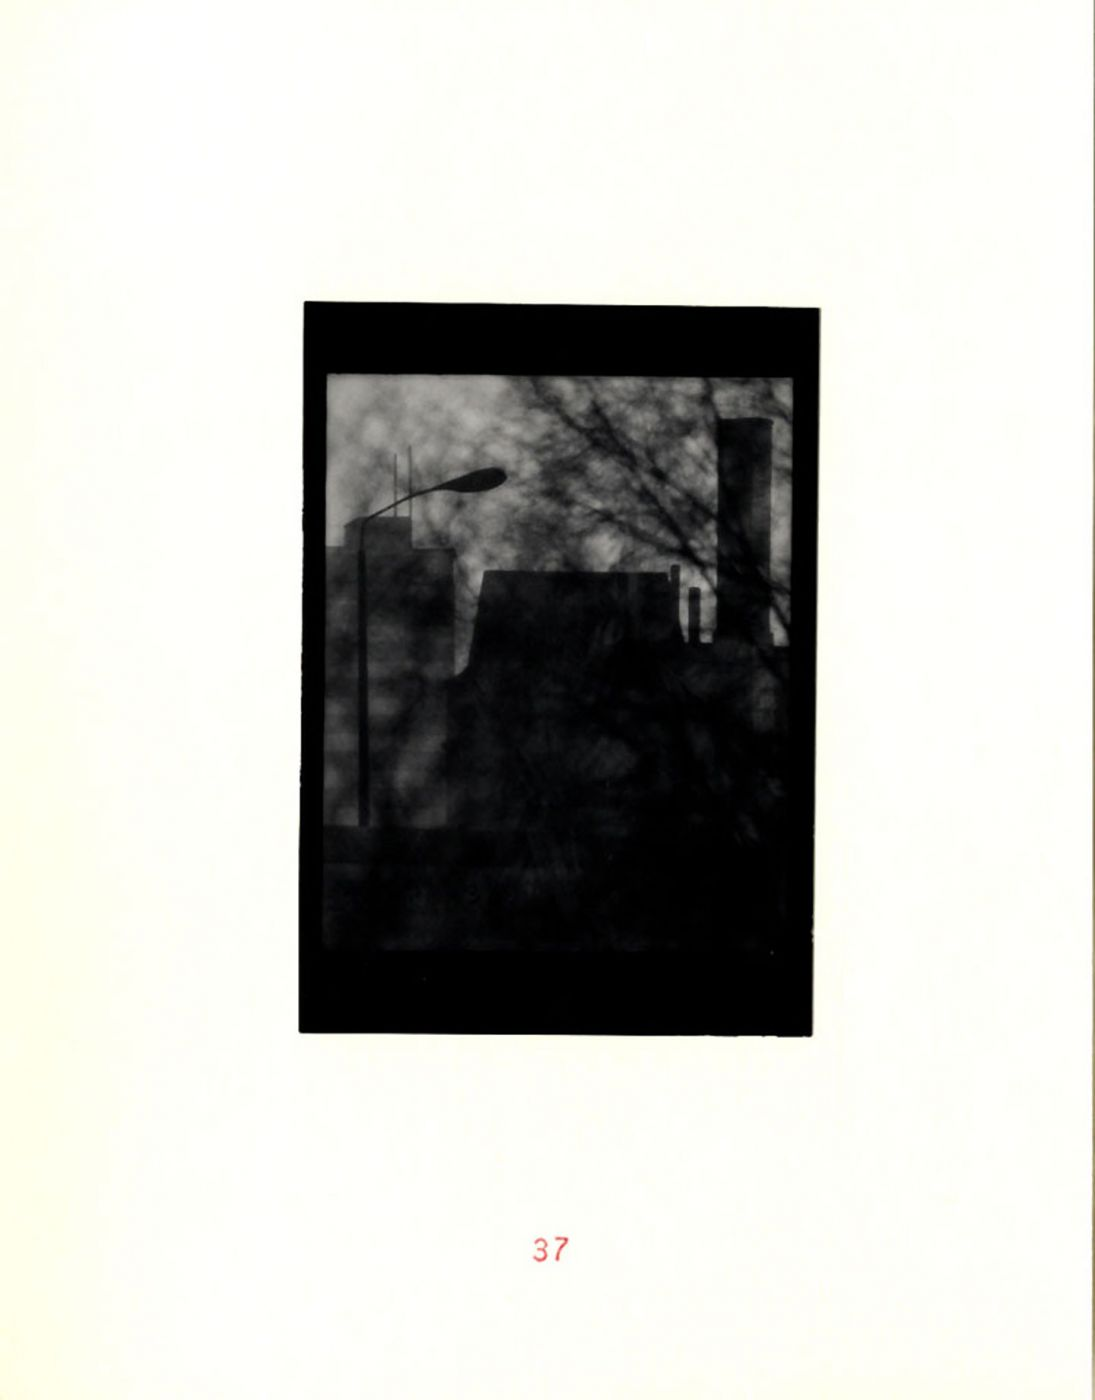 John Gossage: Like a Mother Fucker (LAMF): Three Days in Berlin 1987, Limited Edition (with 27 Tipped-In Gelatin Silver Prints)